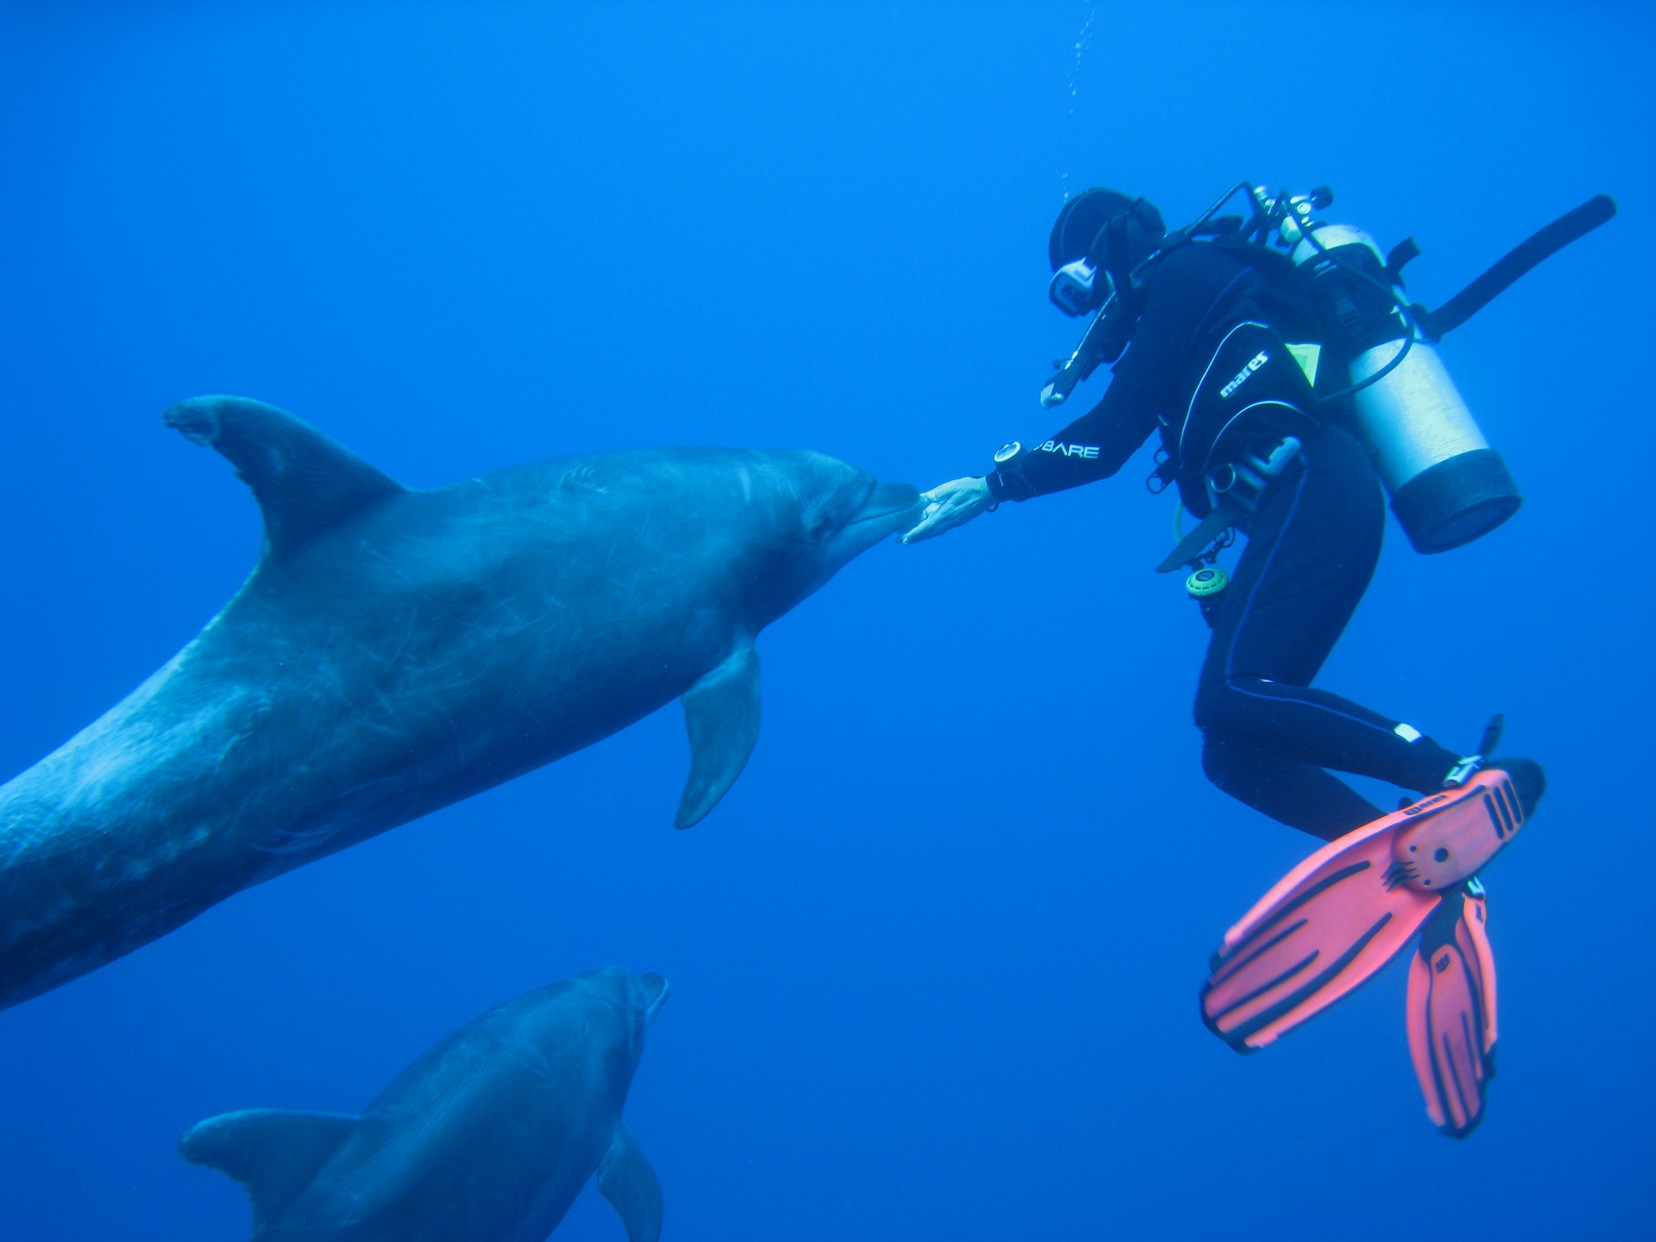 Dolphin gets friendly with diver